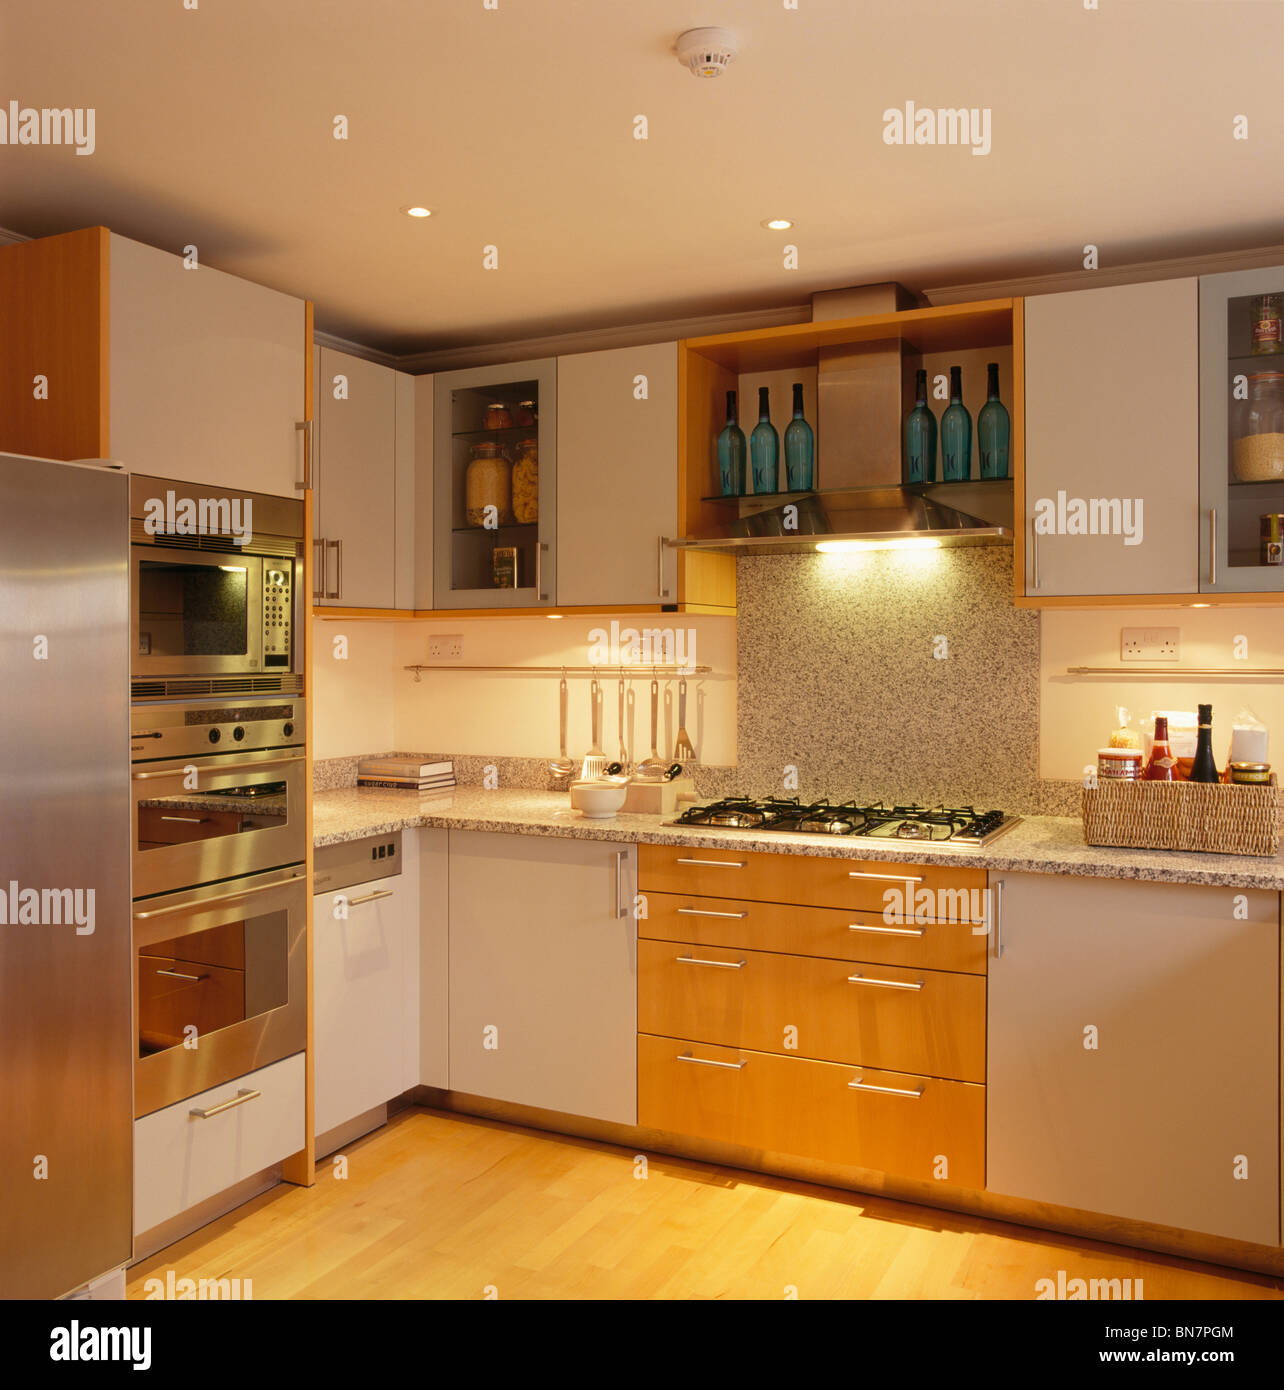 Recessed Lighting For Kitchen Recessed Lighting Below Fitted Wall Cupboards In Modern White